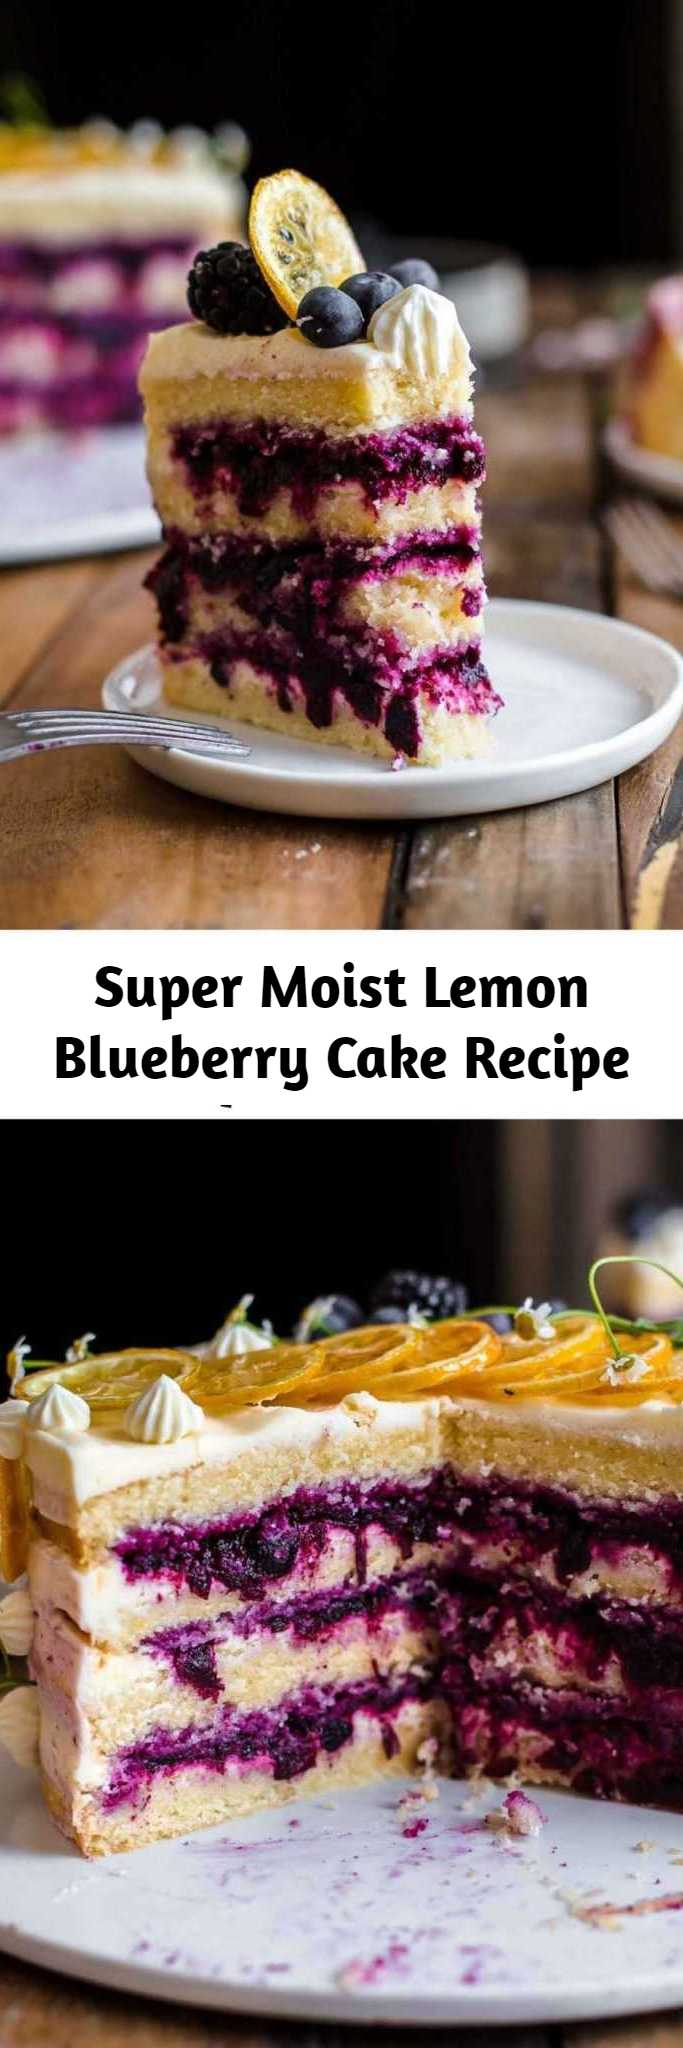 Super Moist Lemon Blueberry Cake Recipe - This Lemon Blueberry Cake is tangy, sweet, super moist, and creamy. It's a delicious and beautiful cake. It comes with soft lemon cake layers, a sweet blueberry filling, and an ultra creamy lemon cream cheese frosting. #lemon #blueberry #cake #creamcheesefrosting #baking #sweets #dessert